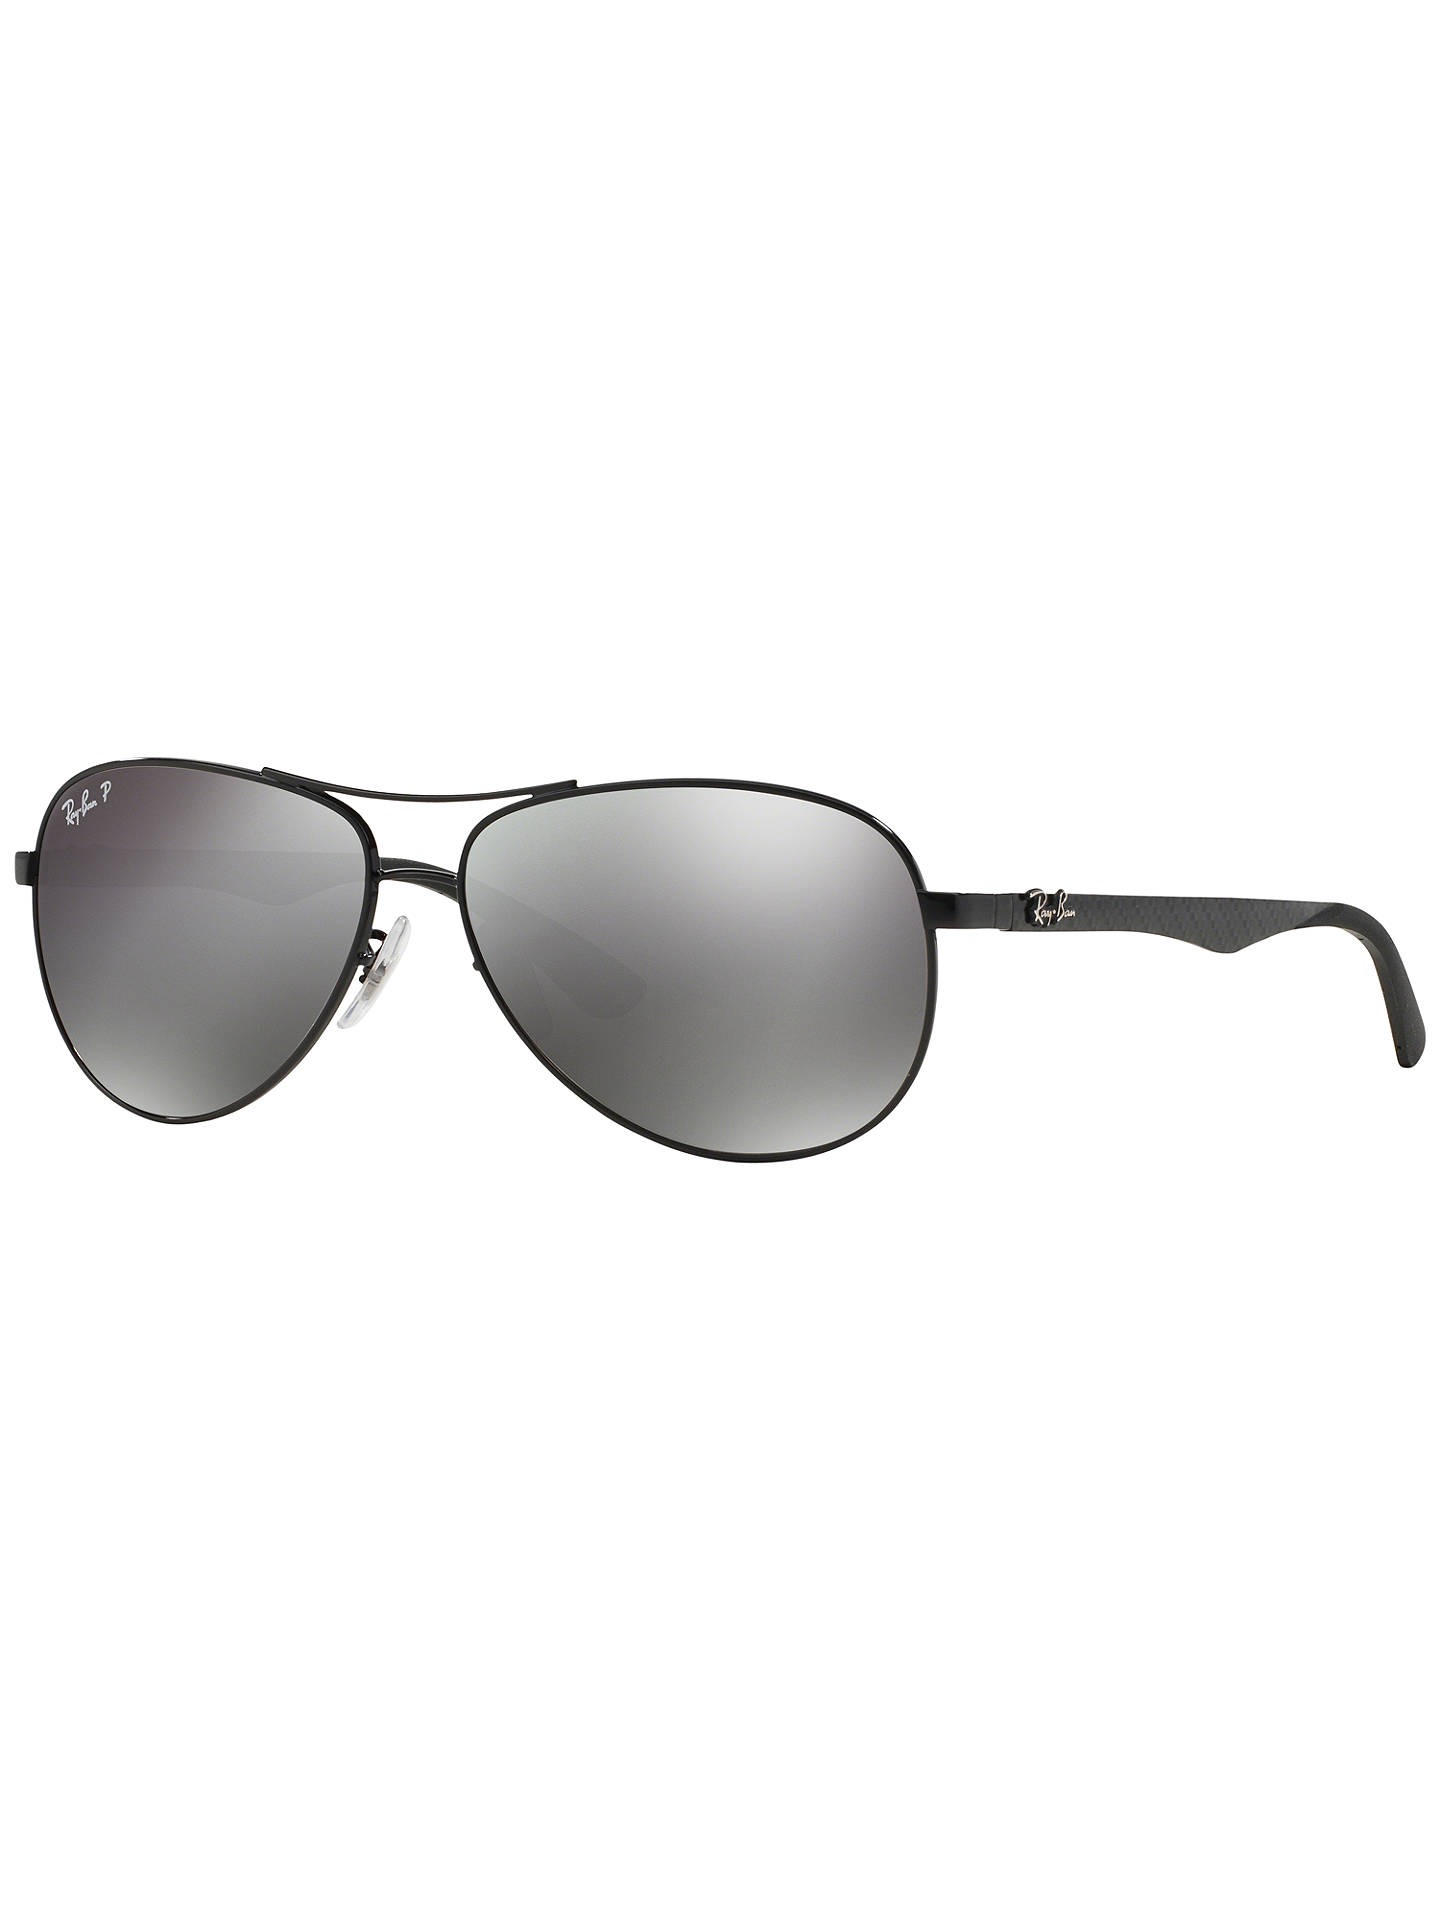 4b40abd48d BuyRay-Ban RB8313 Polarised Carbon Fibre Pilot Sunglasses